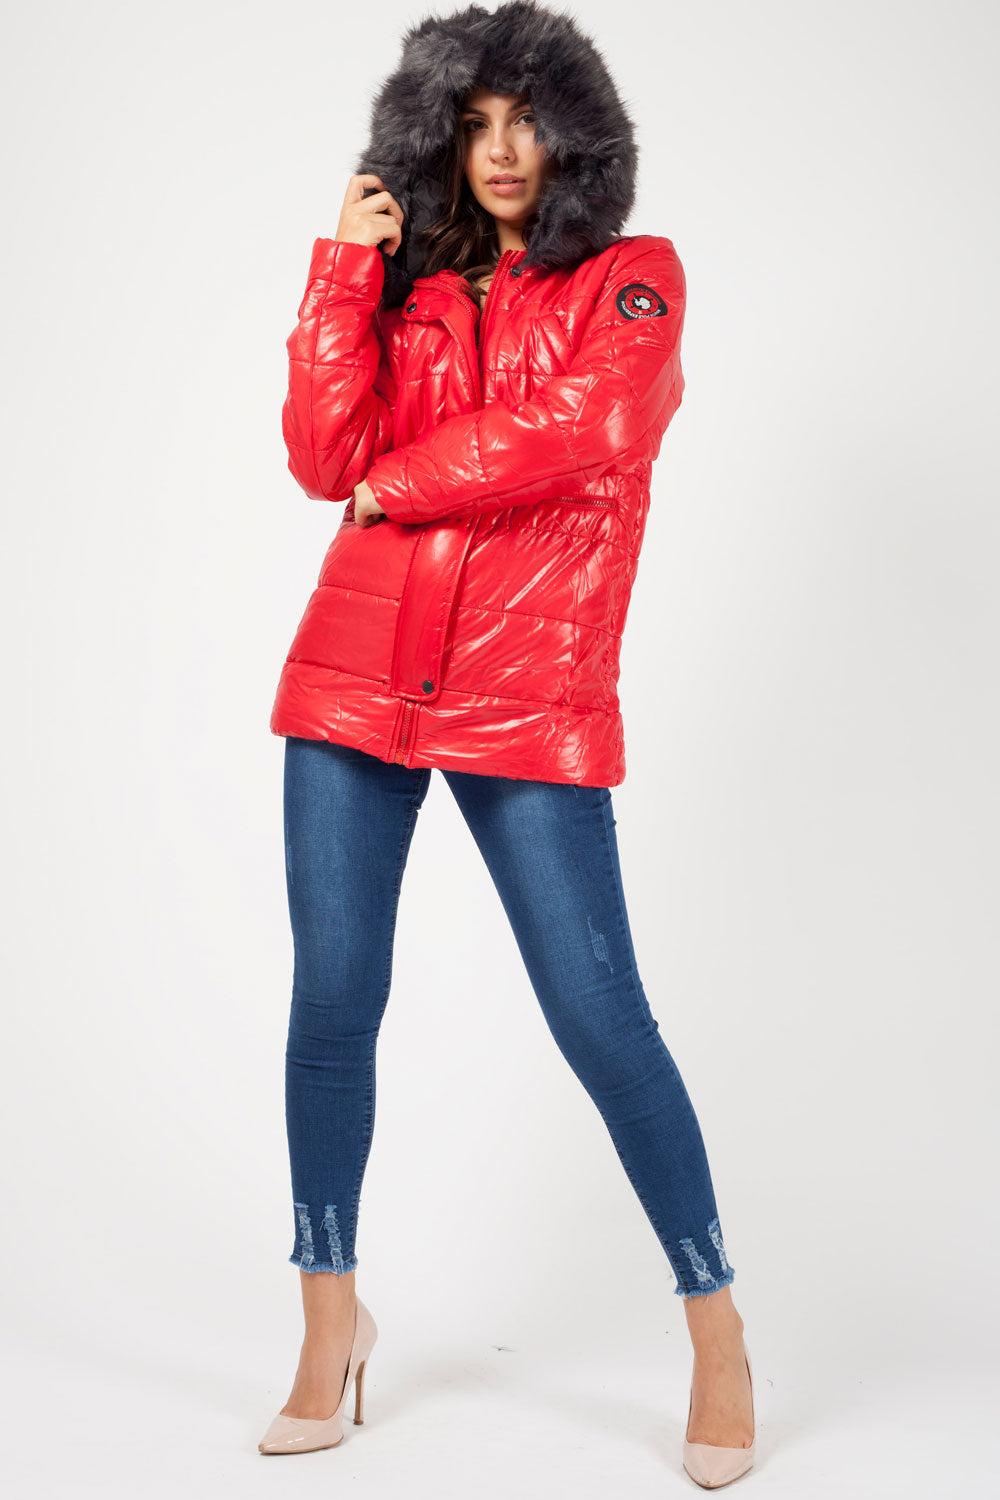 canada goose style coat womens uk